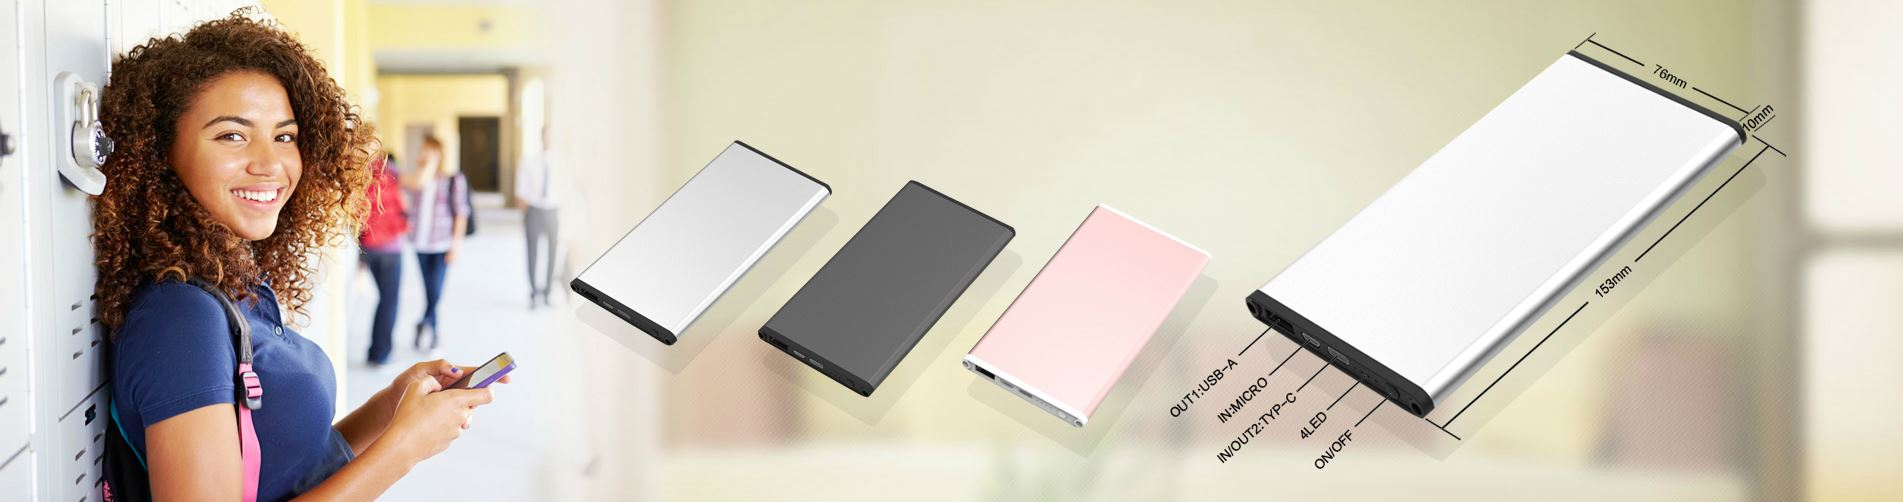 power bank manufacturer and supplier